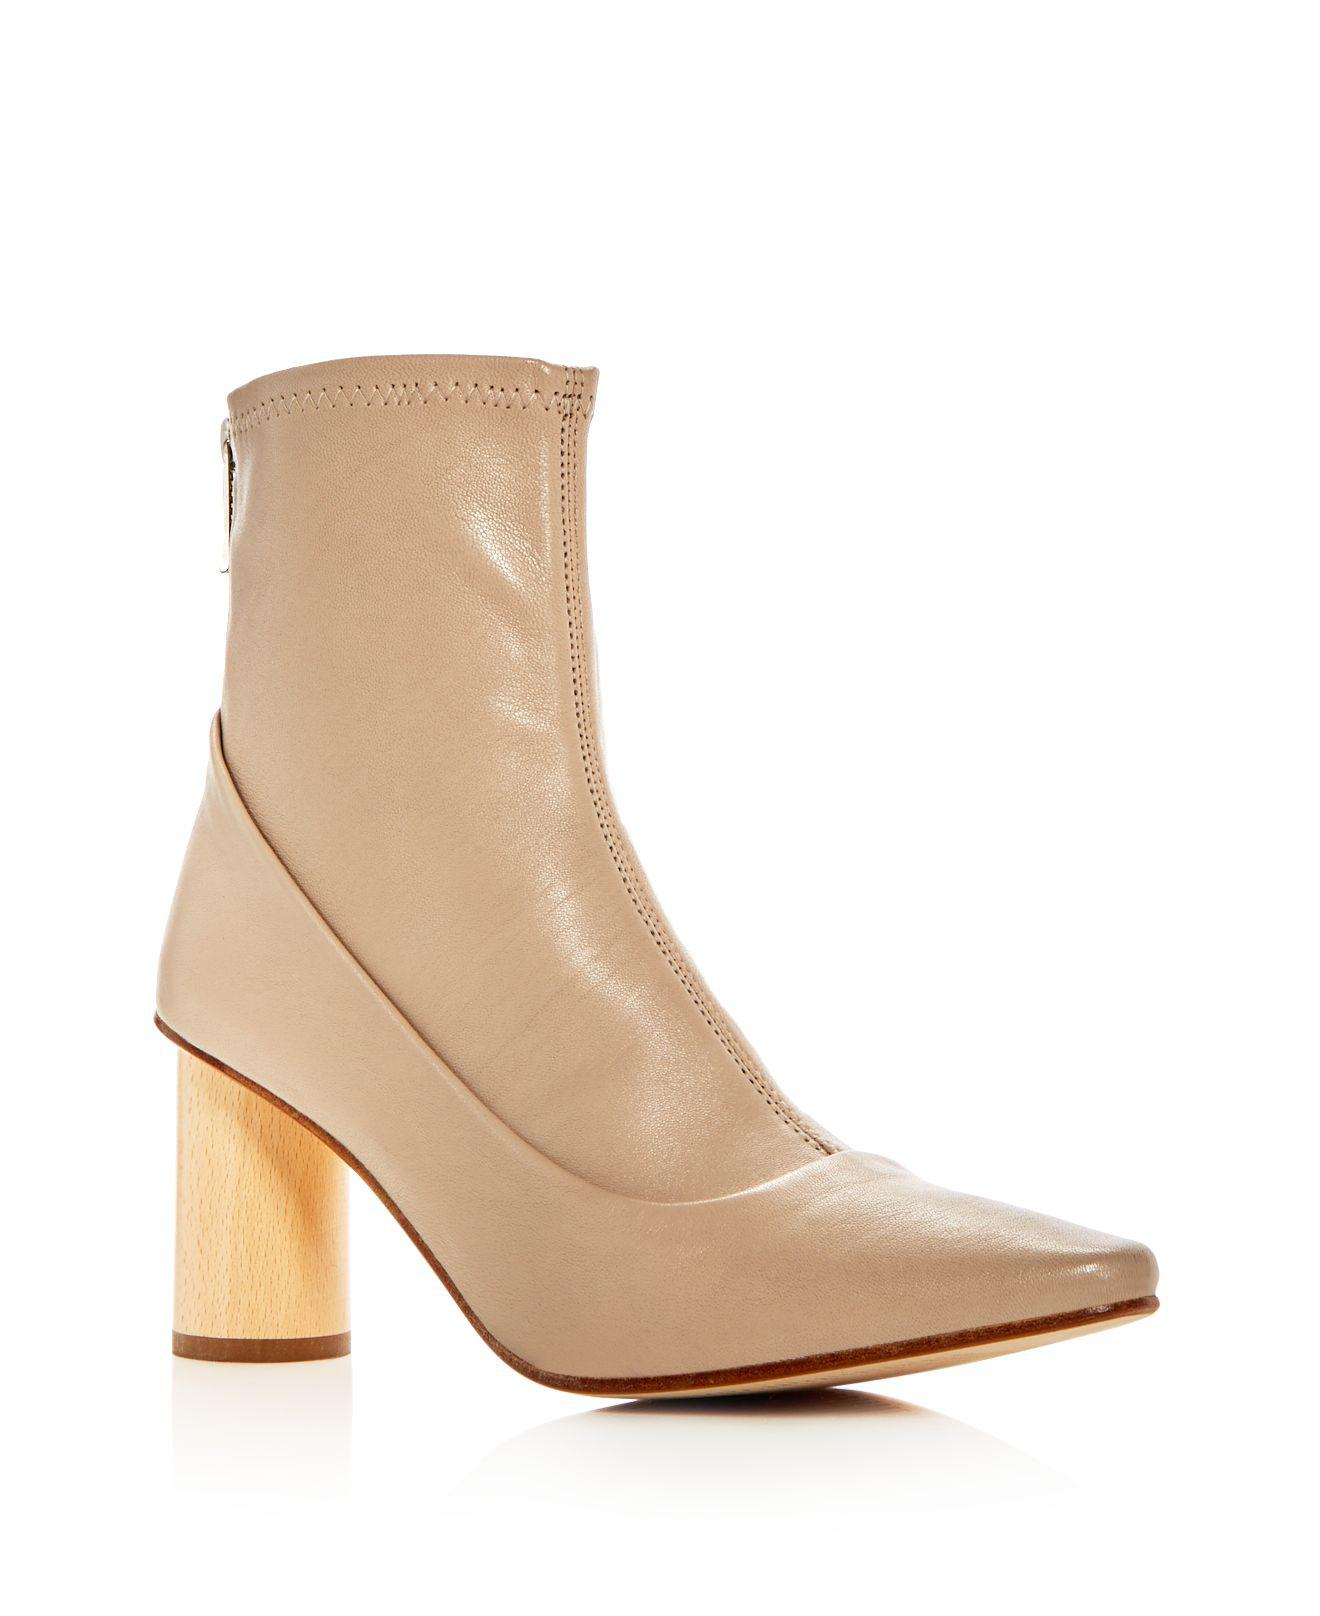 LOQ Women's Vero Leather Pointed Toe Booties Hot Sale Free Shipping New Arrival For Sale Cheap Sale With Paypal Brand New Unisex Online OAXr7